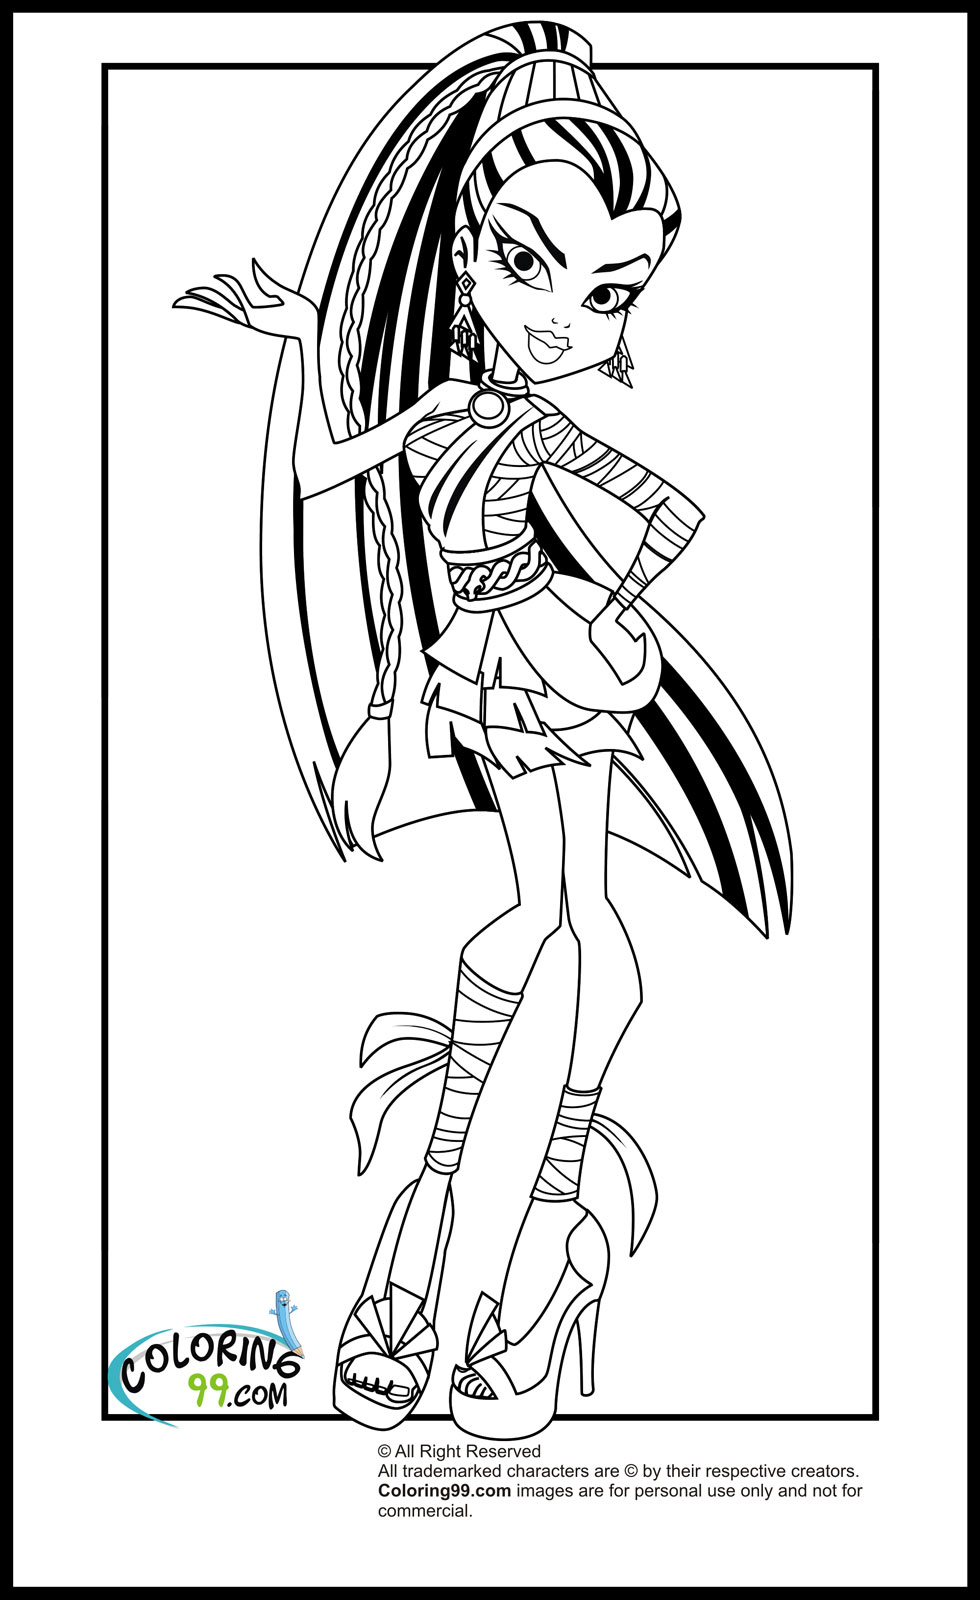 coloring monster high clawdeen wolf monster high coloring pages coloring high monster